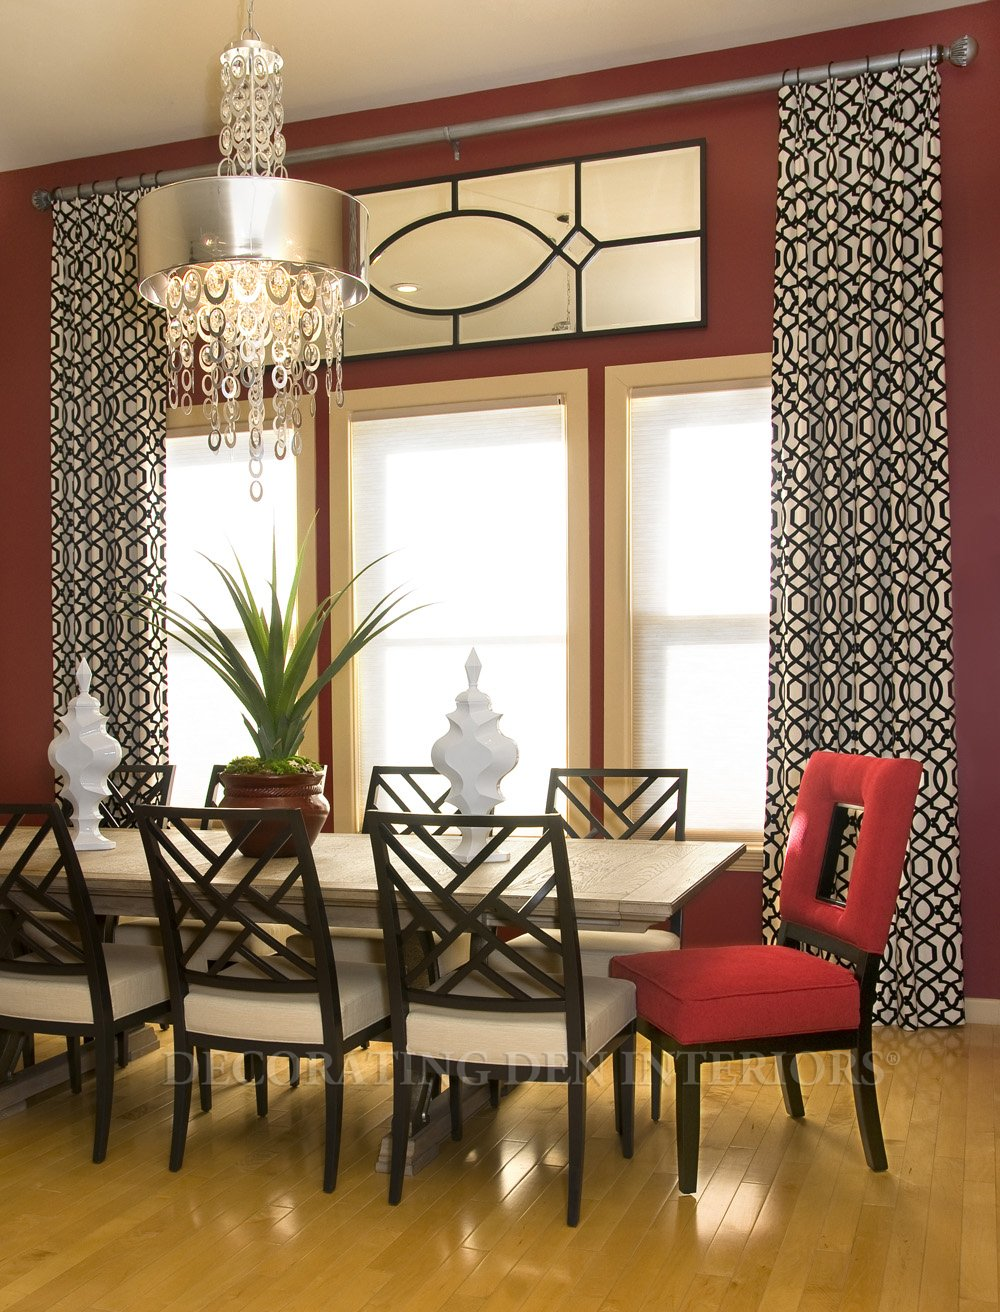 How tall should my window treatments be christine for Dining room window treatments